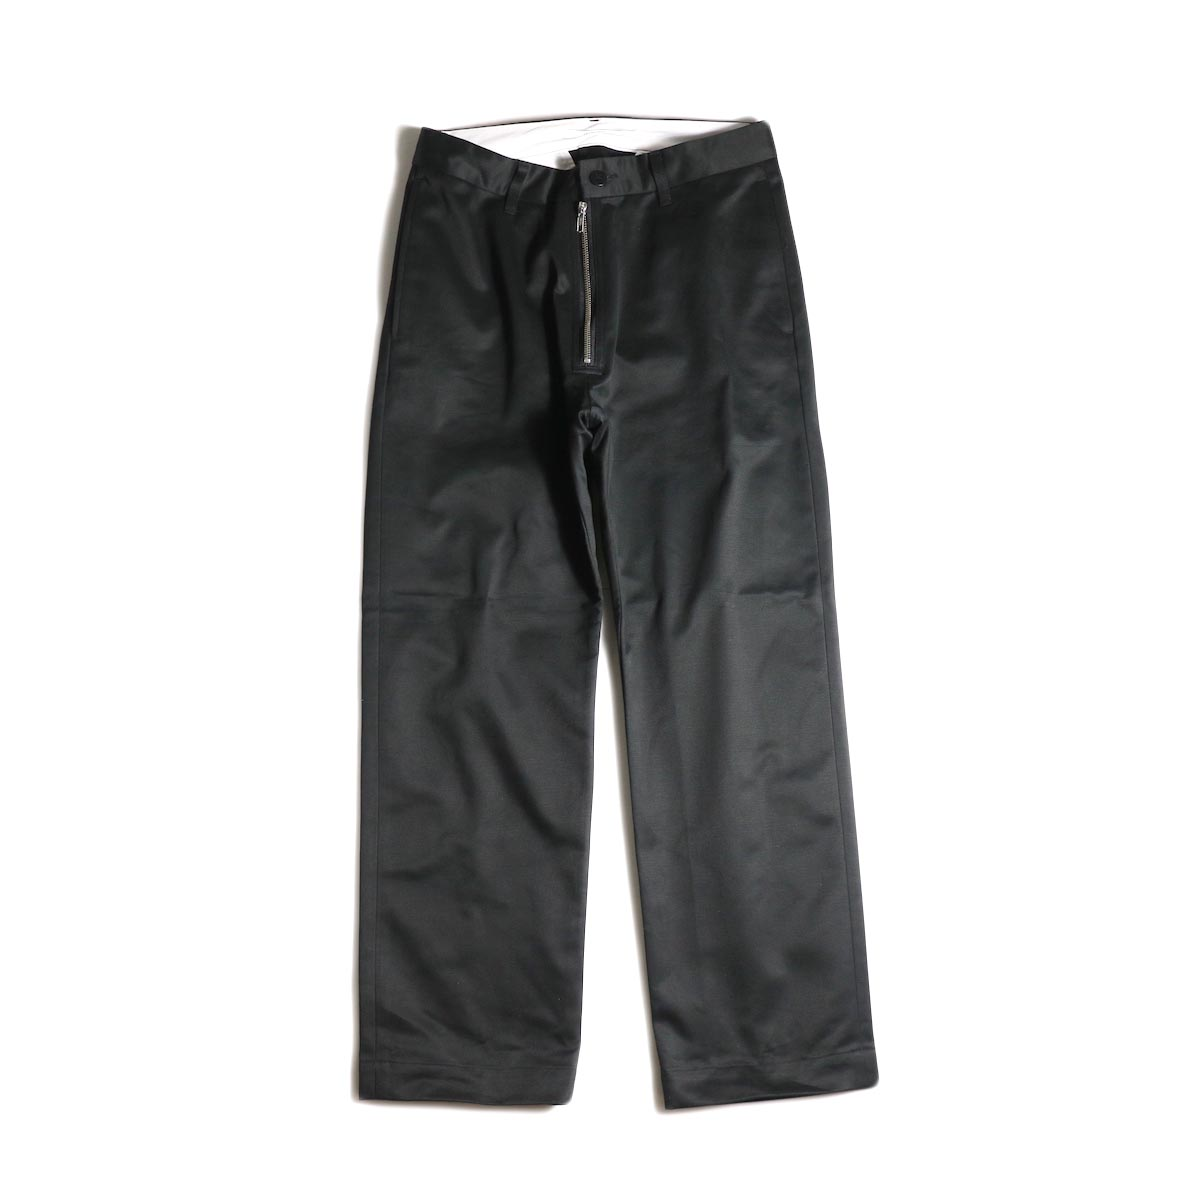 FUTURE PRIMITIVE / FP FZ CHINO PANTS (Black)